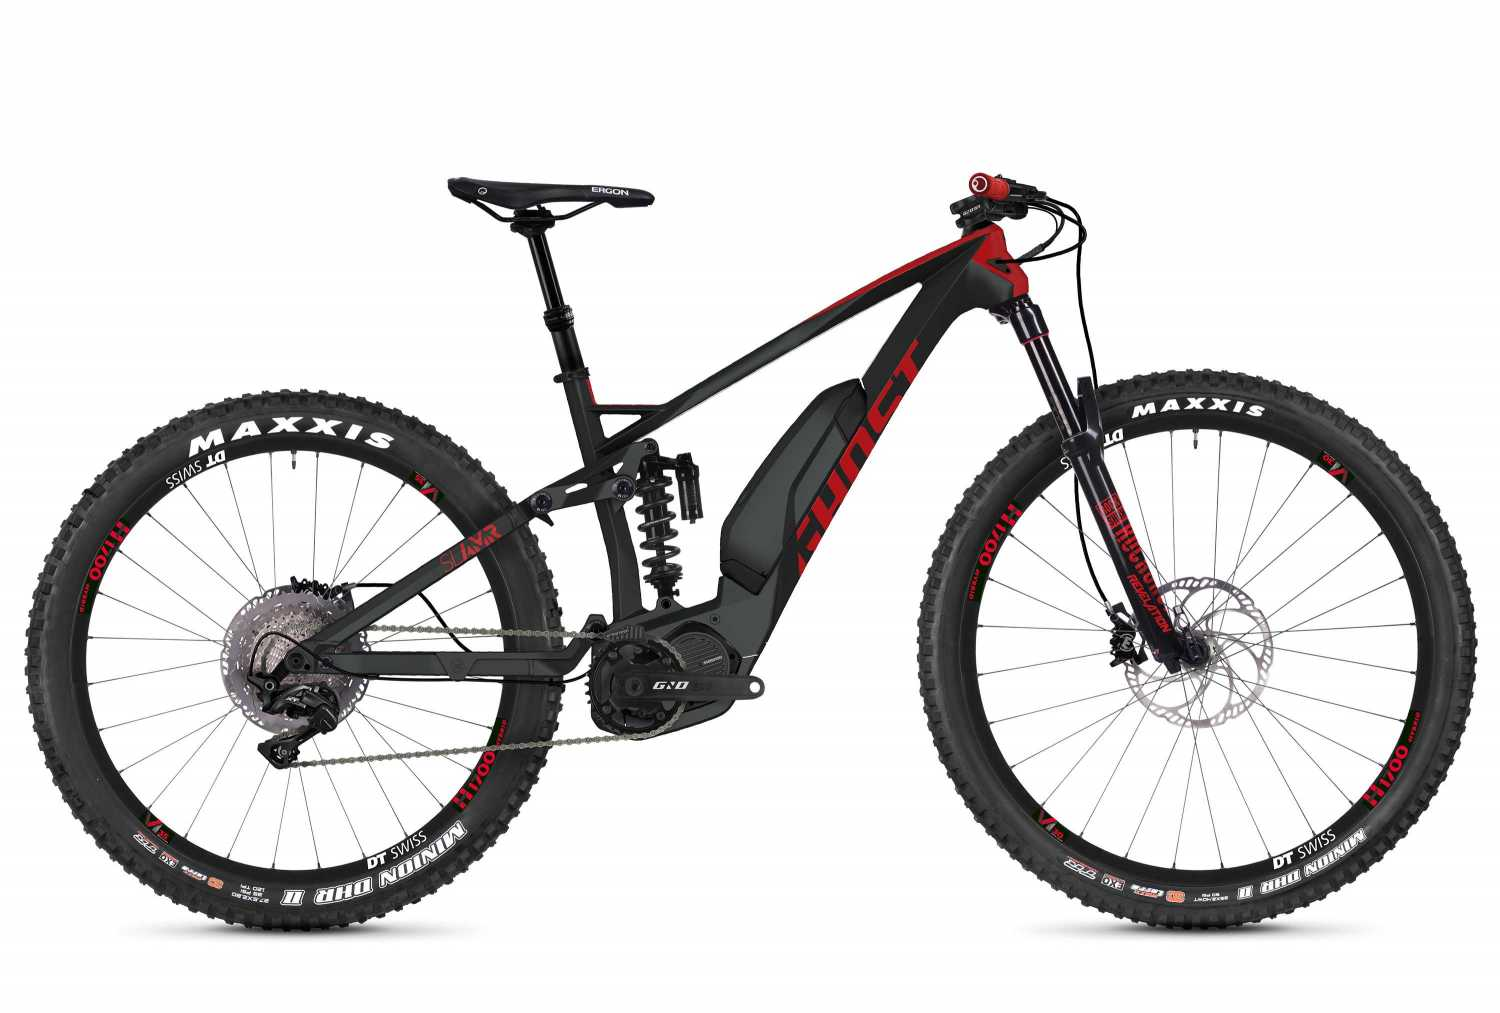 GHOST HybRide SL AMR S 6.7+ LC